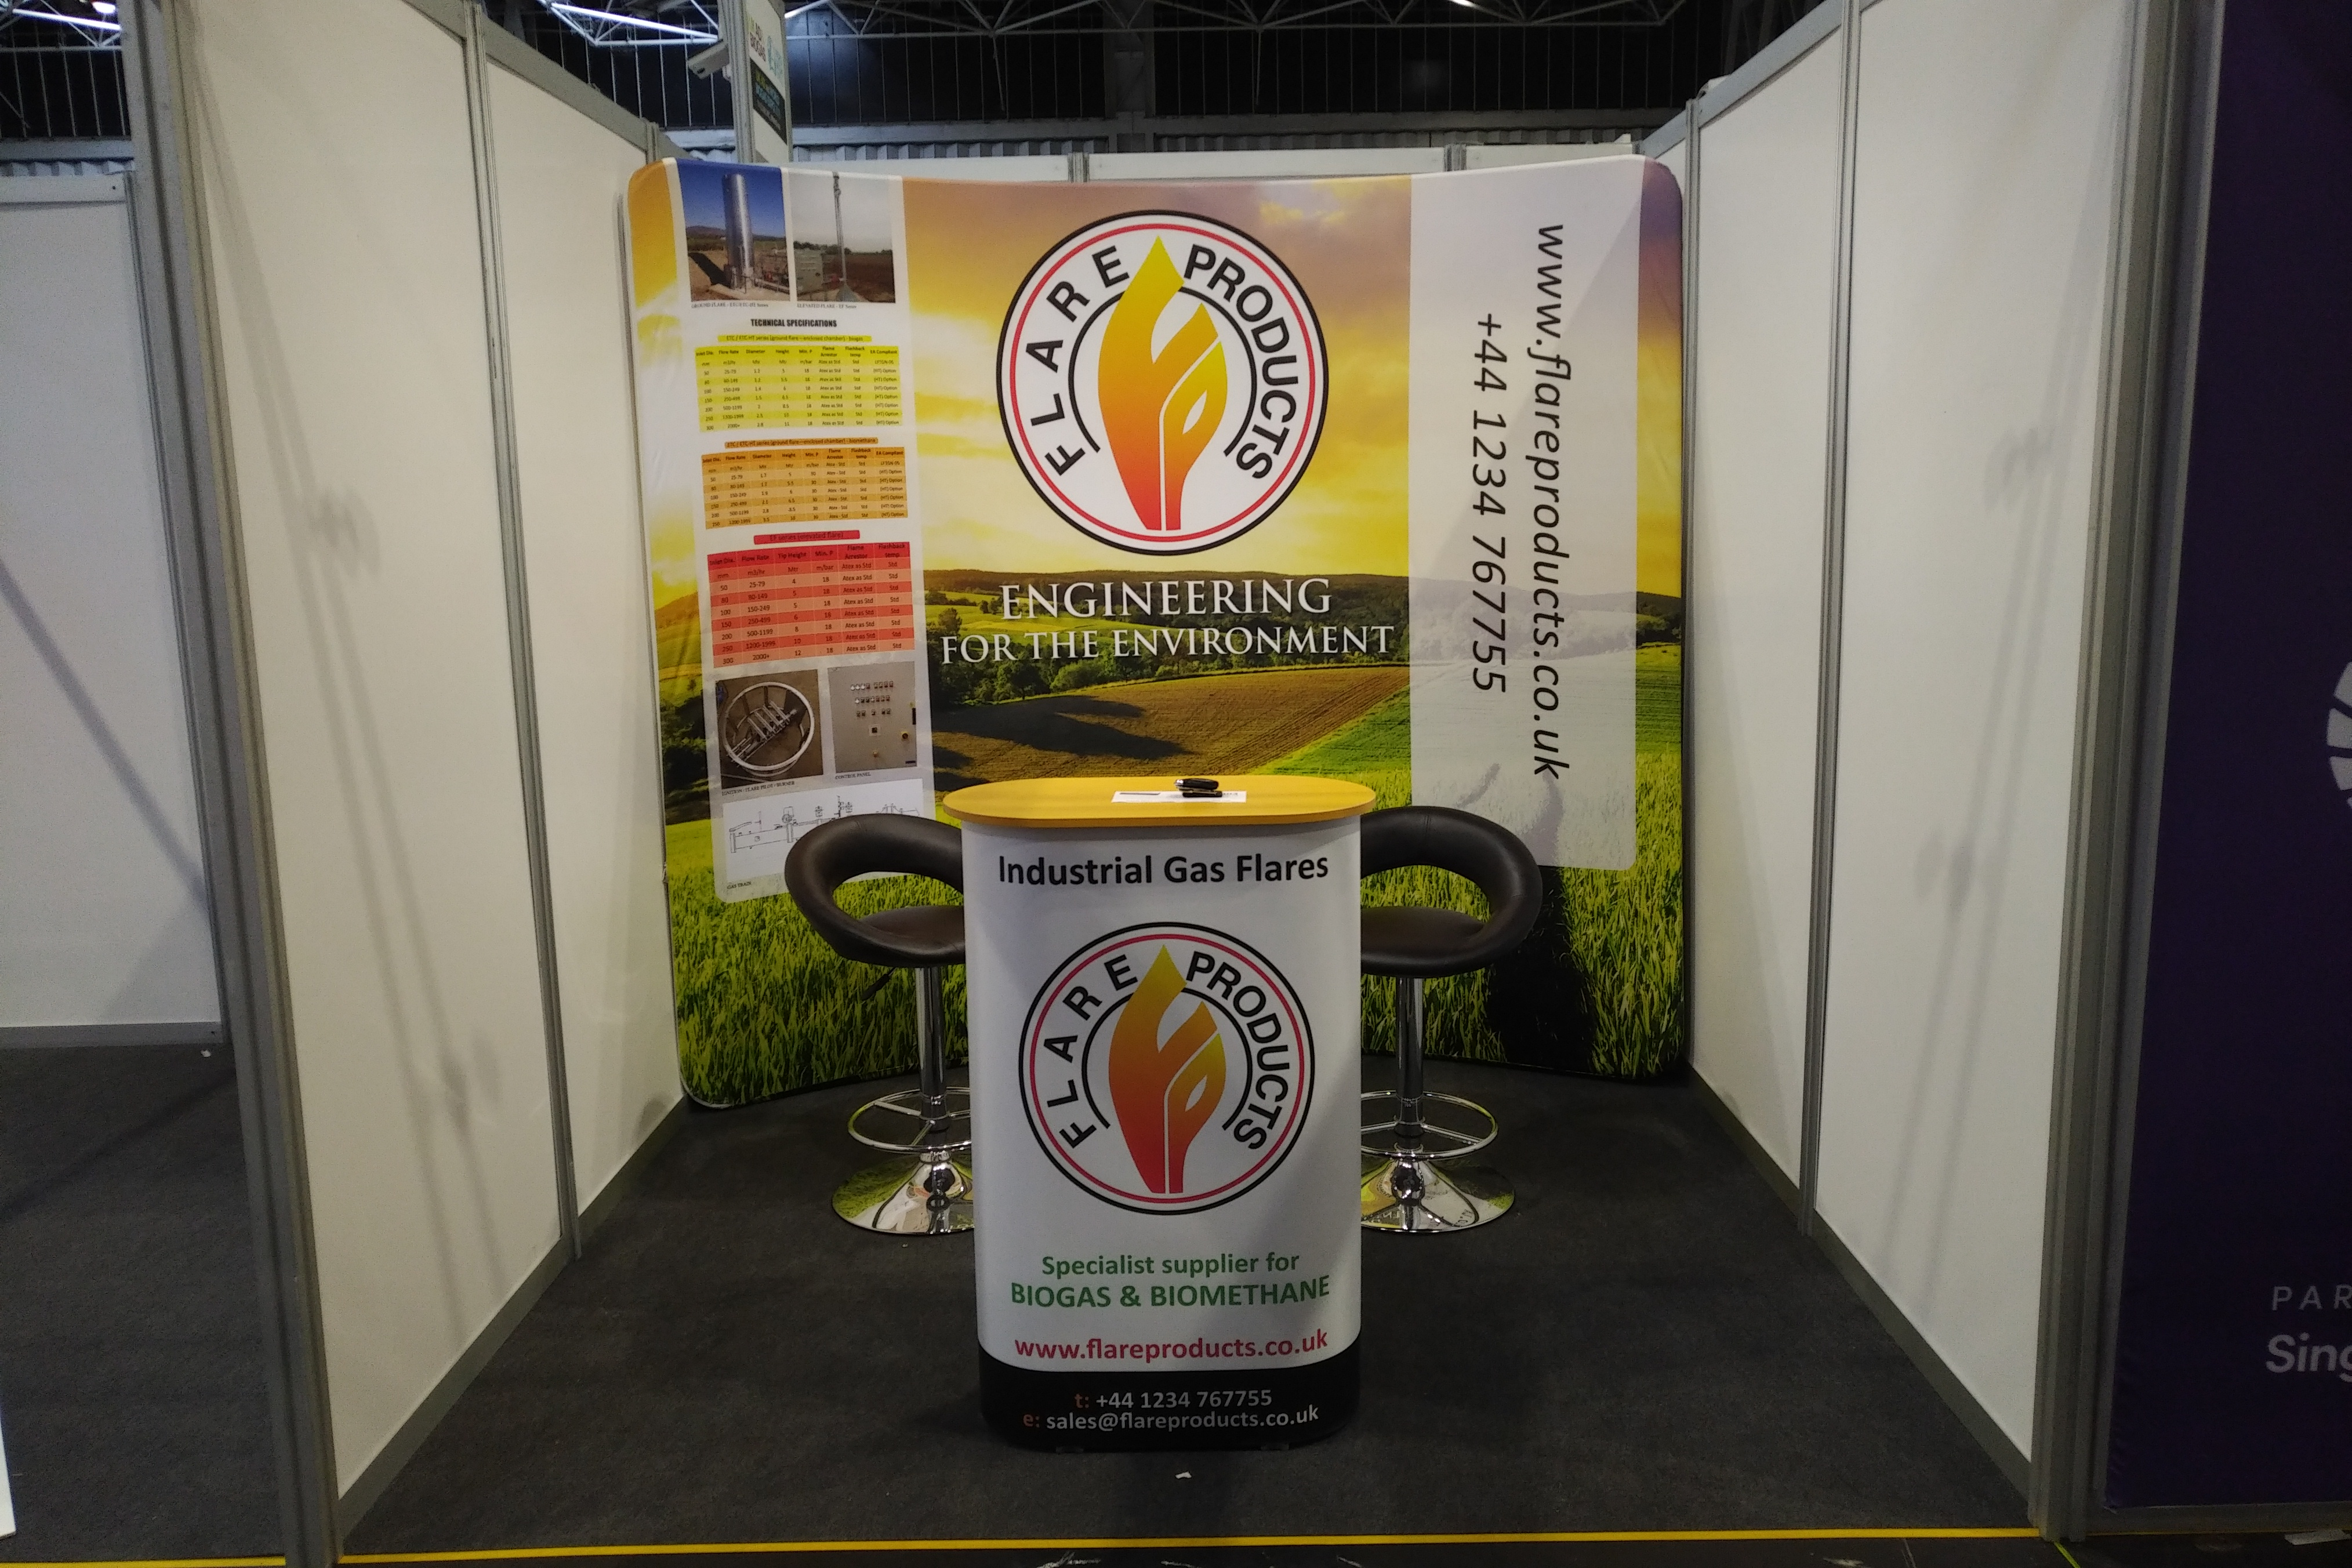 Stand G303